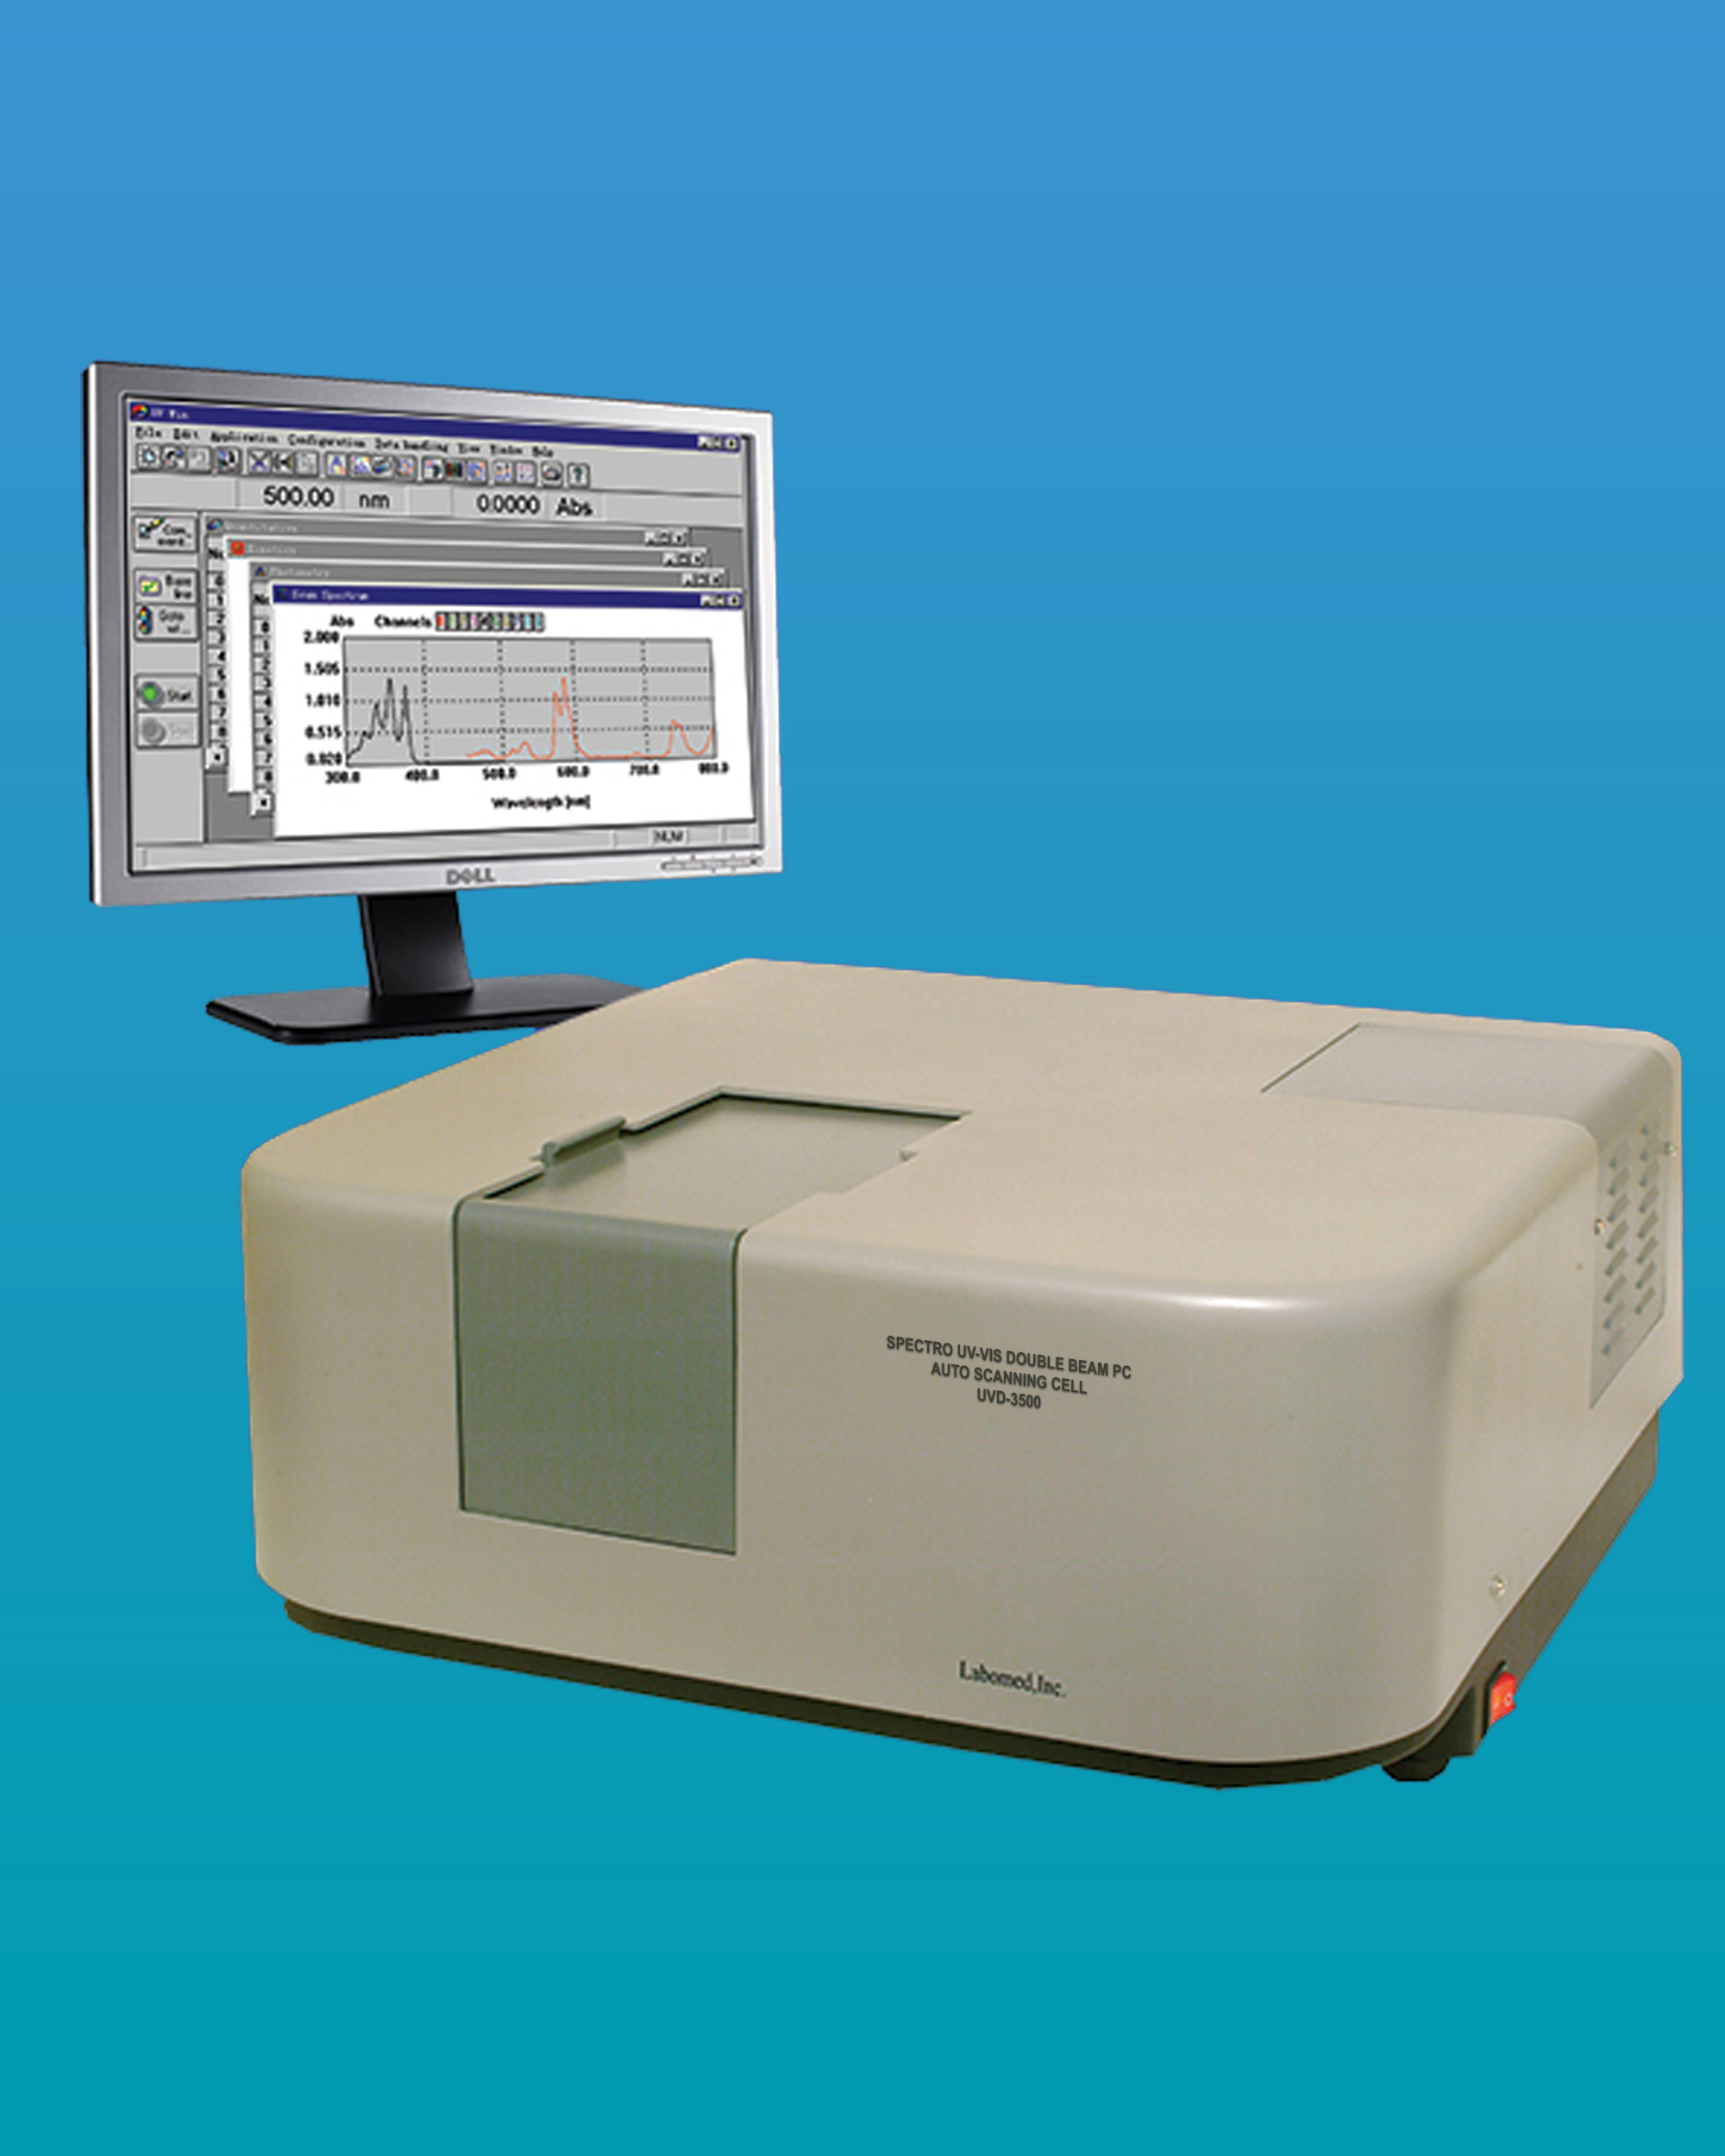 [UVD-3500] Spectro UV-VIS Double Beam Research Spectrophotometer w/ Photometric Range -4~4A & Variable Bandwidth